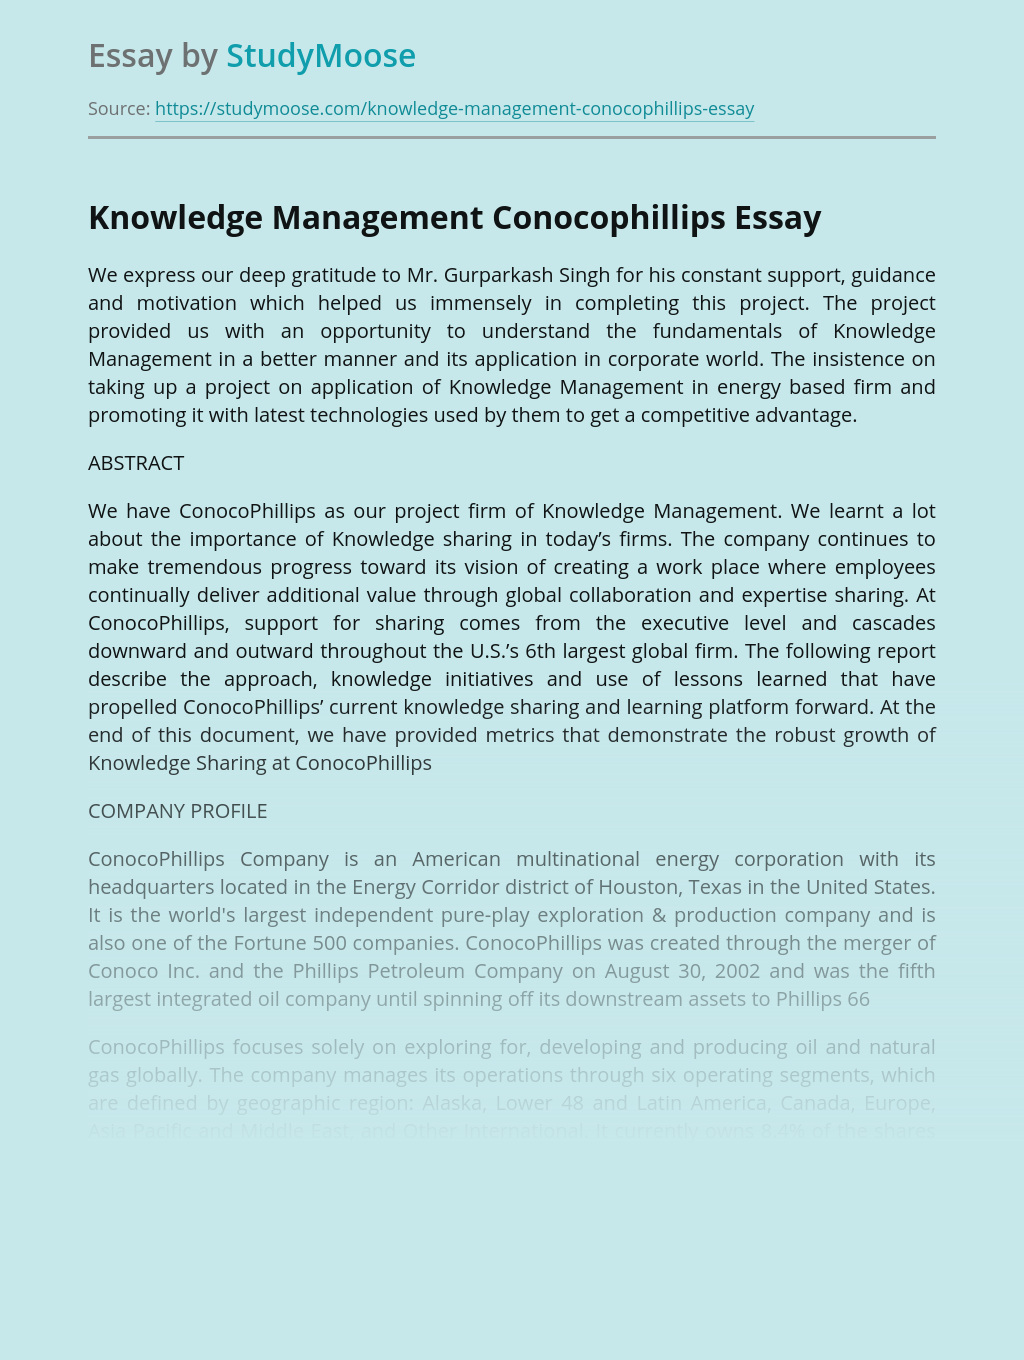 Knowledge Management Conocophillips